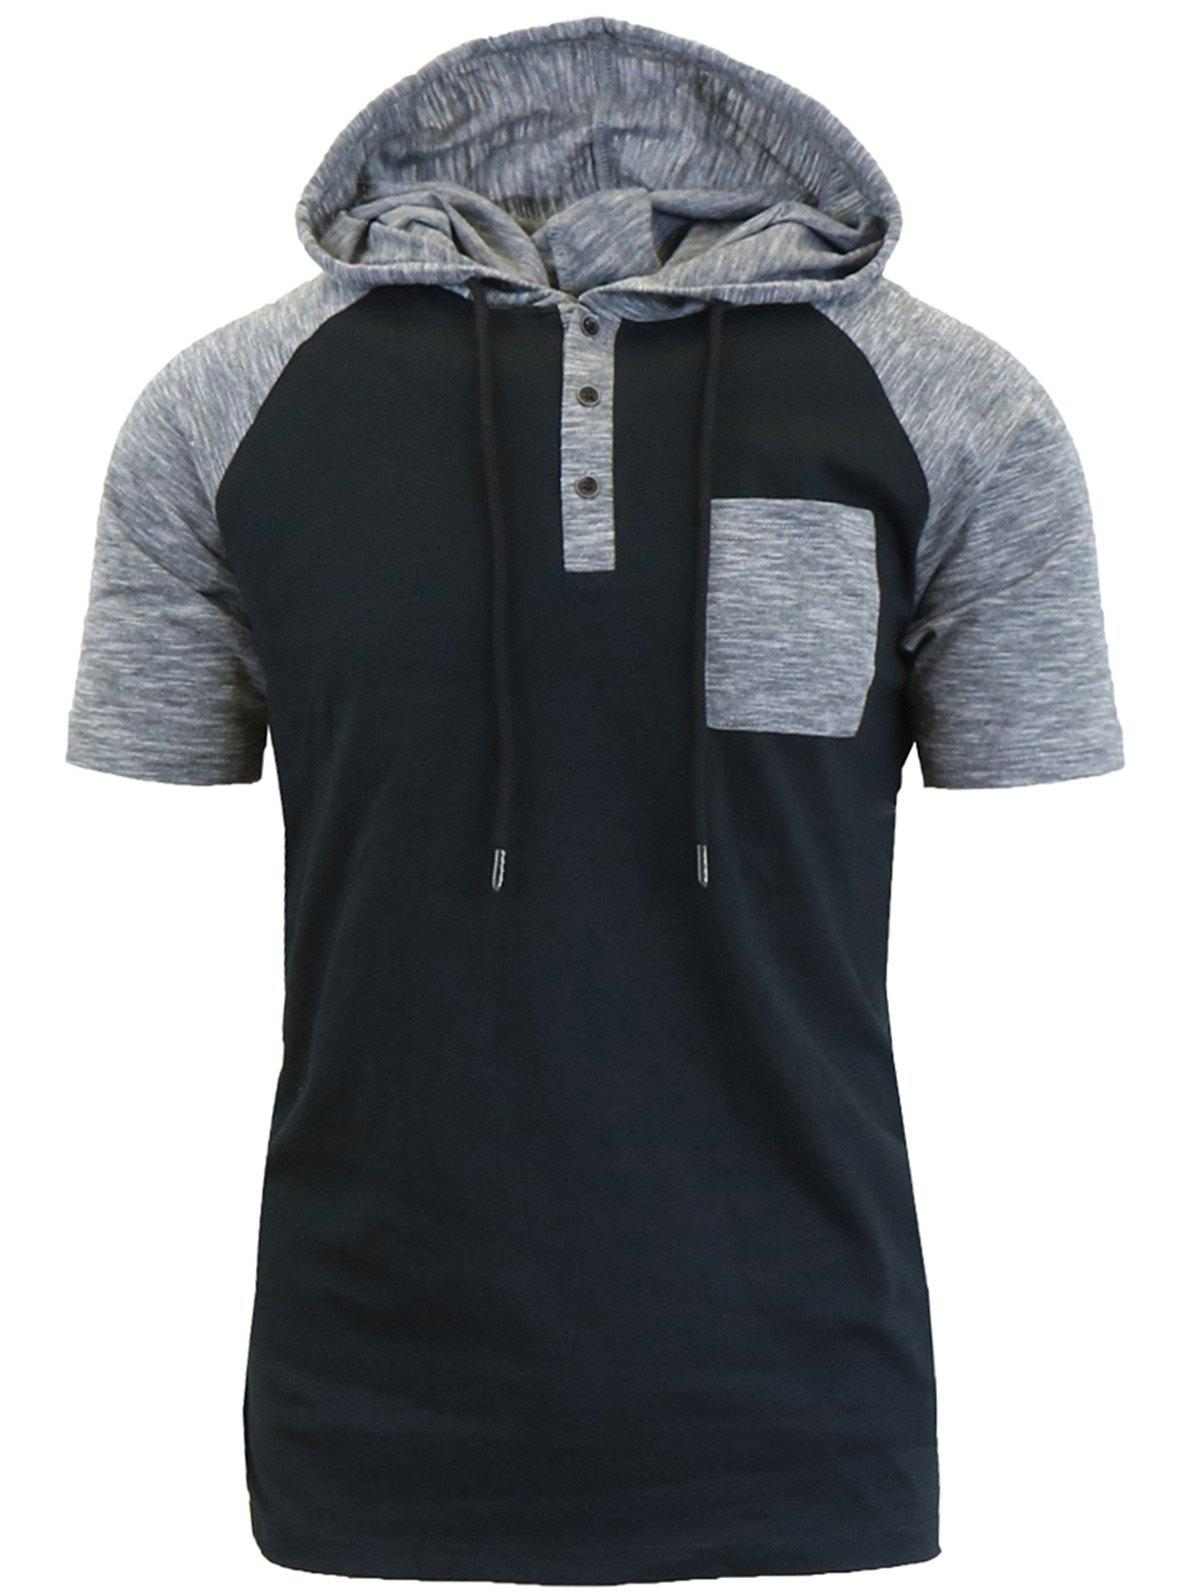 Panel Design Hooded Drawstring Raglan Sleeve T-shirtMEN<br><br>Size: L; Color: BLACK; Style: Casual,Fashion; Material: Polyester; Sleeve Length: Short; Collar: Hooded; Embellishment: Spliced; Pattern Type: Solid; Weight: 0.2490kg; Package Contents: 1 x T-shirt;